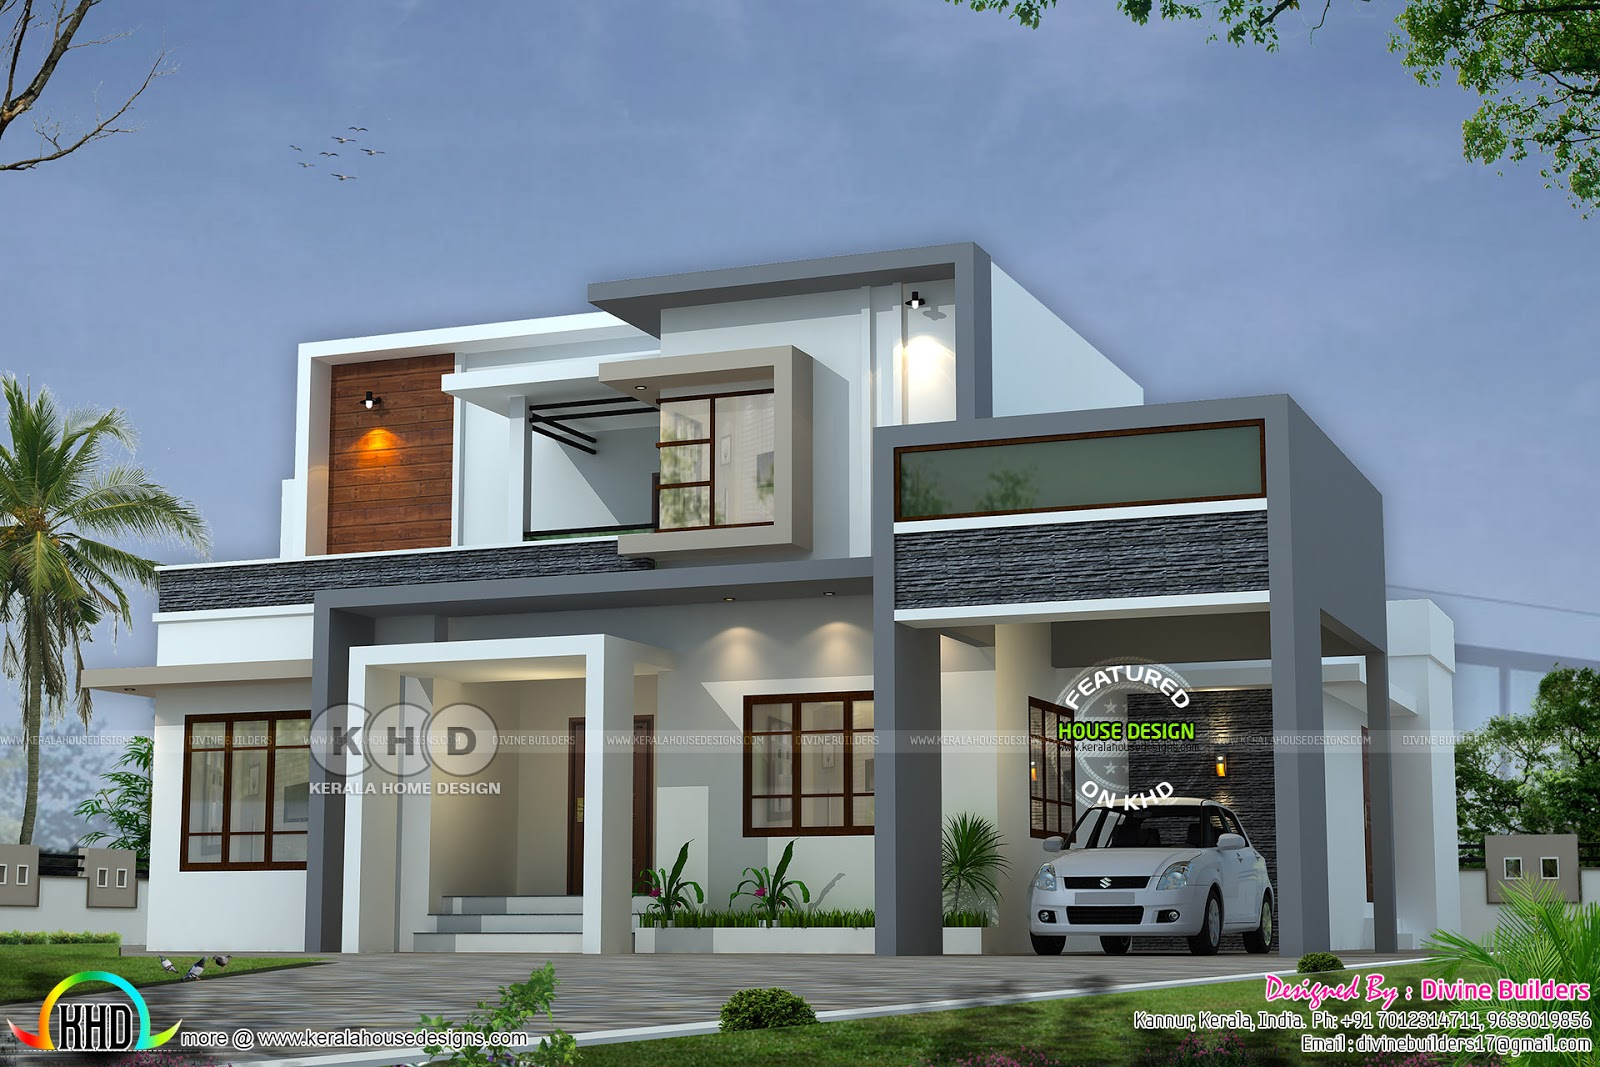 2017 kerala home design and floor plans for Home by design